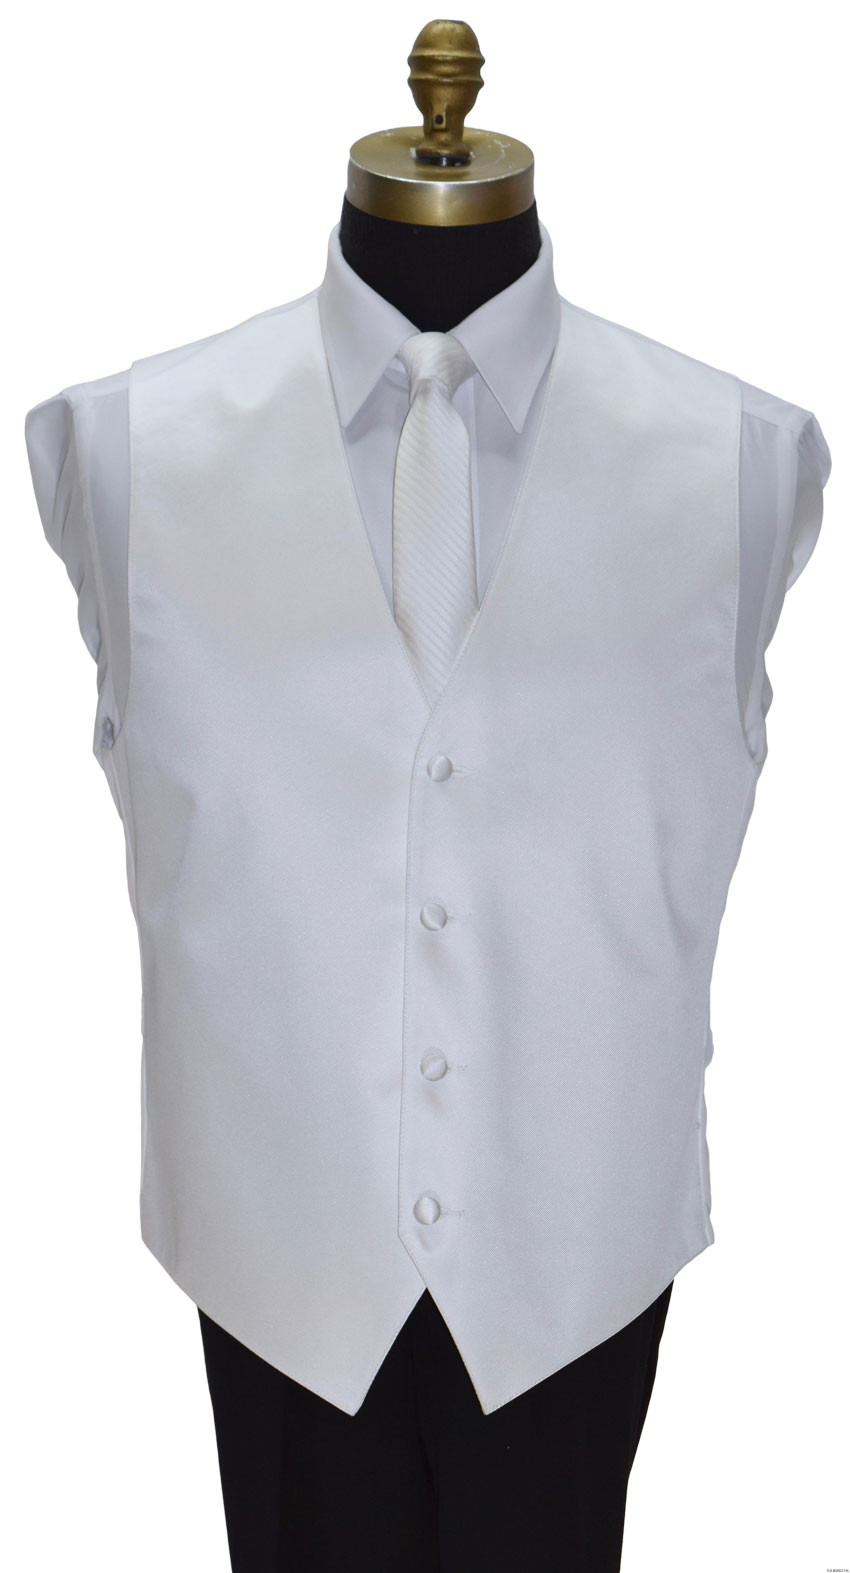 men's and boy's white vest with long white skinny dress tie